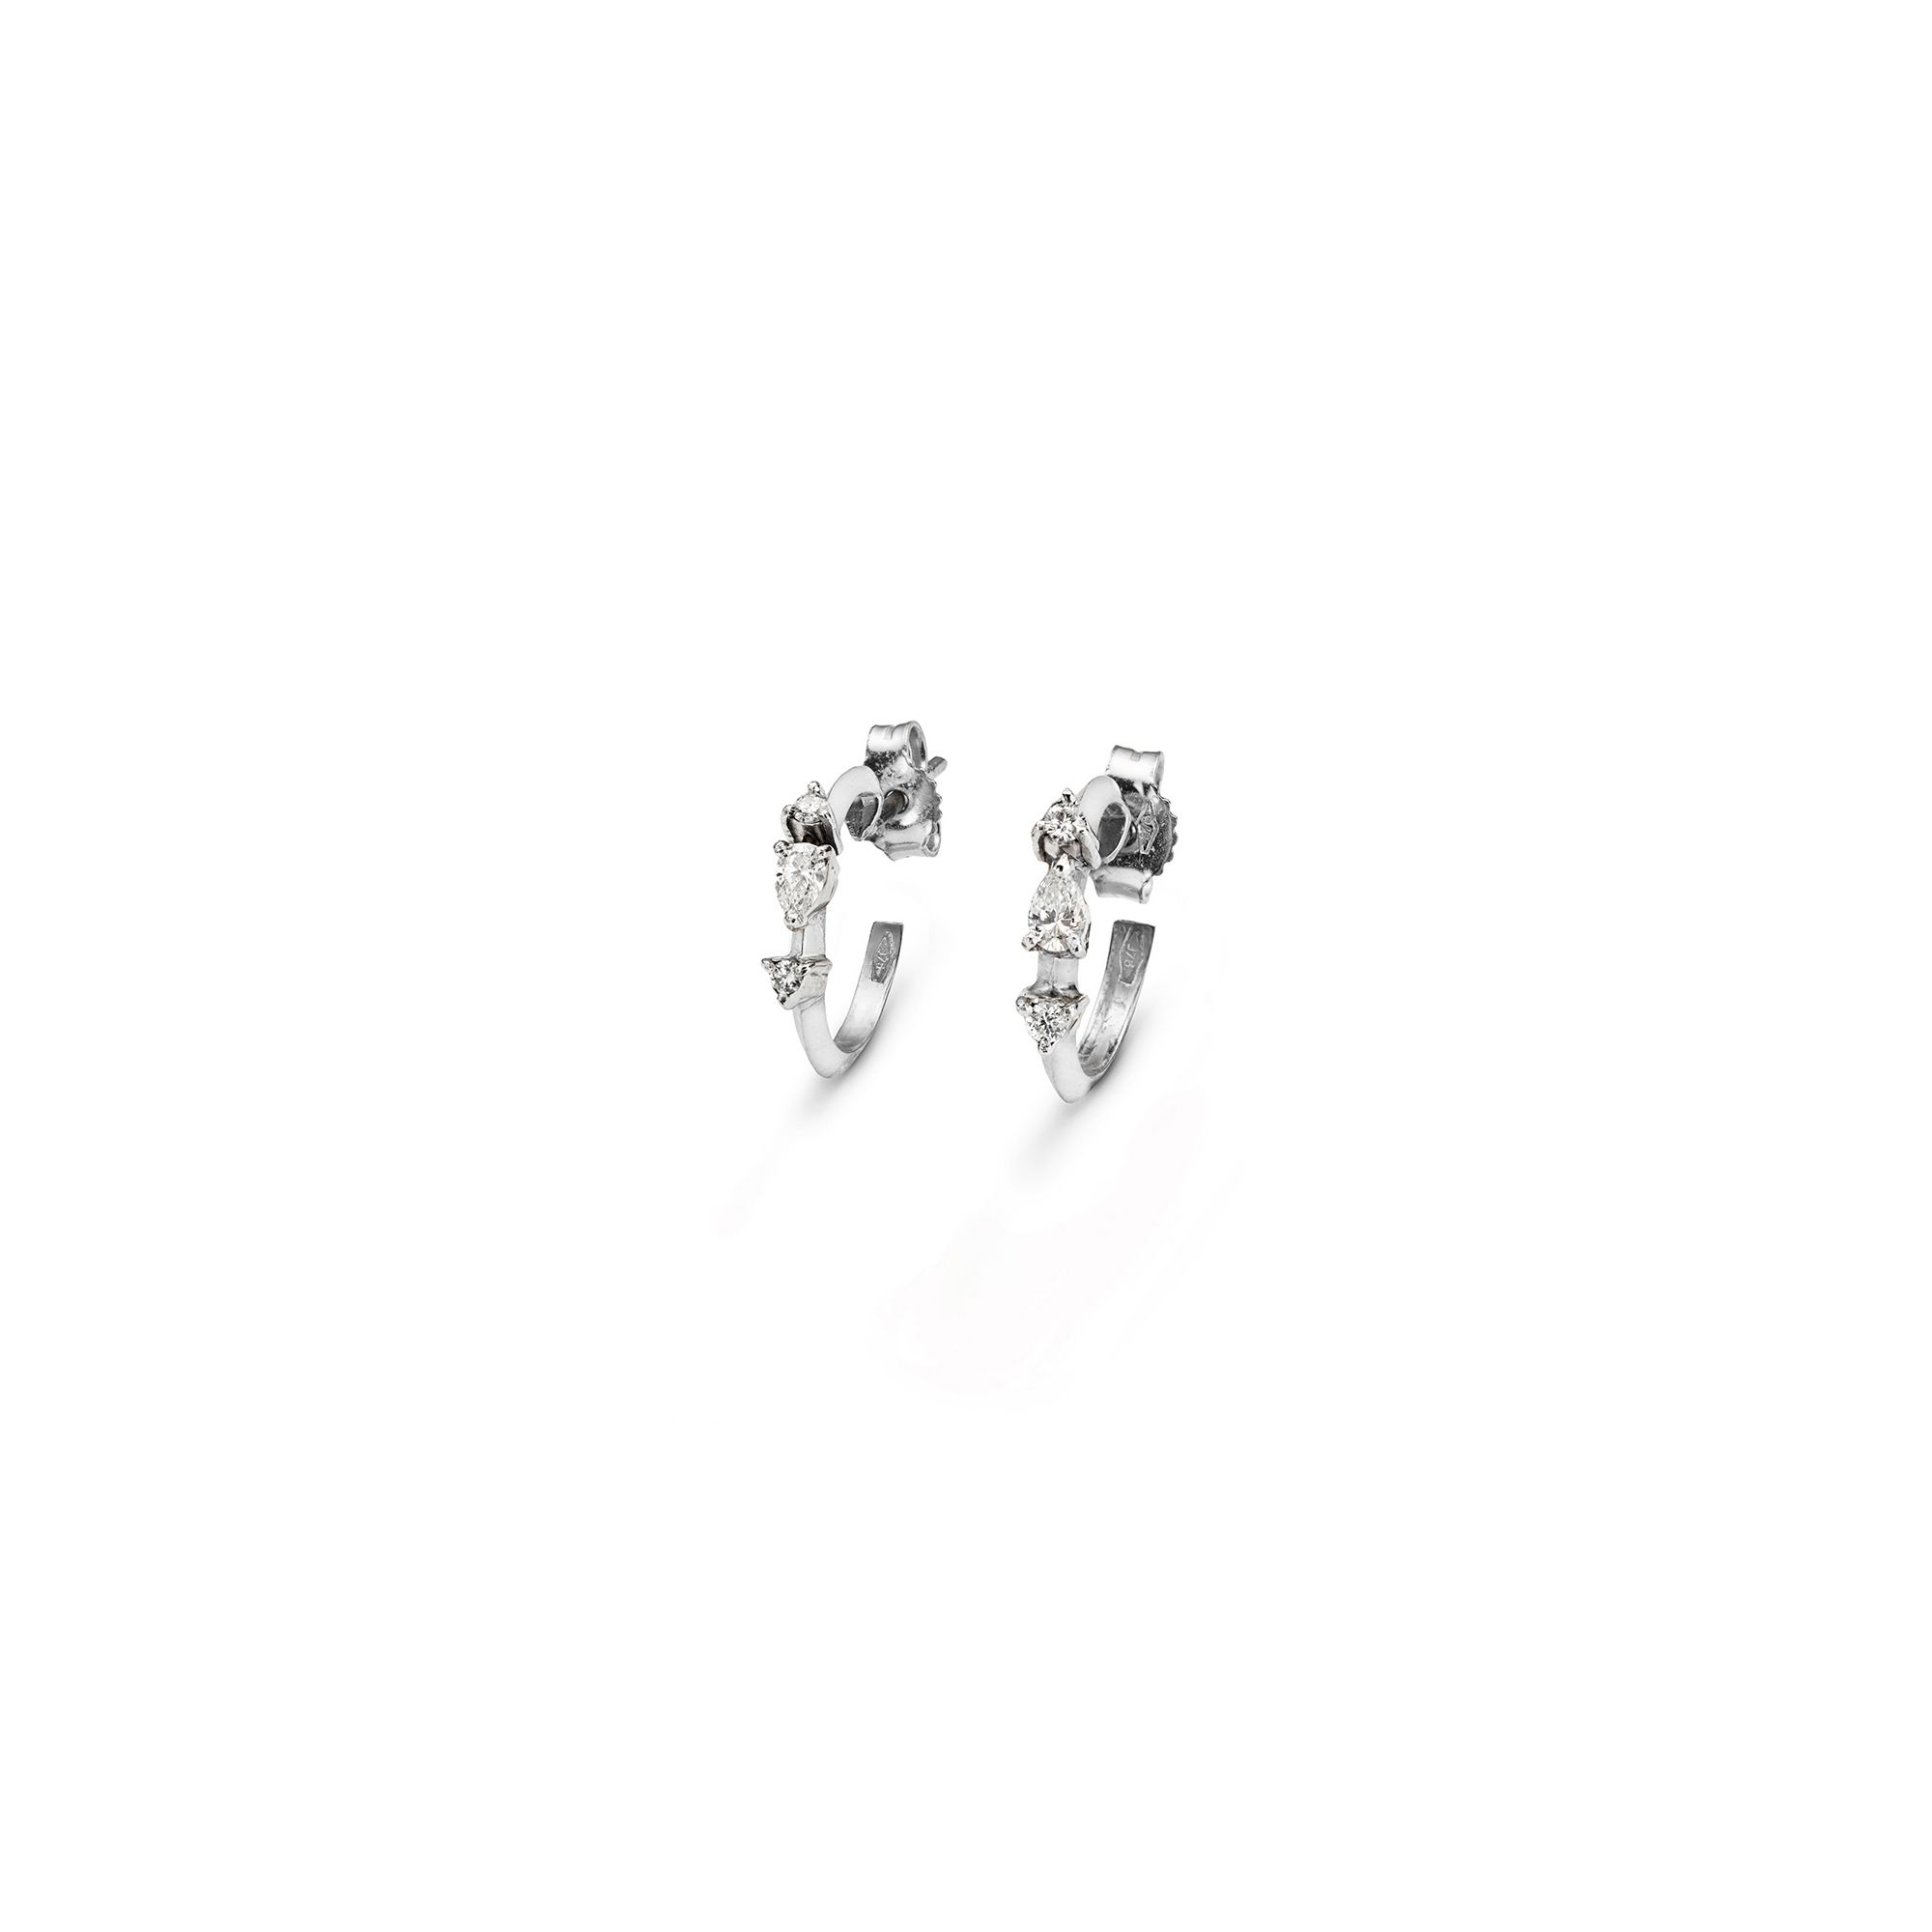 White gold 'Balance' hoop earrings White gold earrings with diamonds